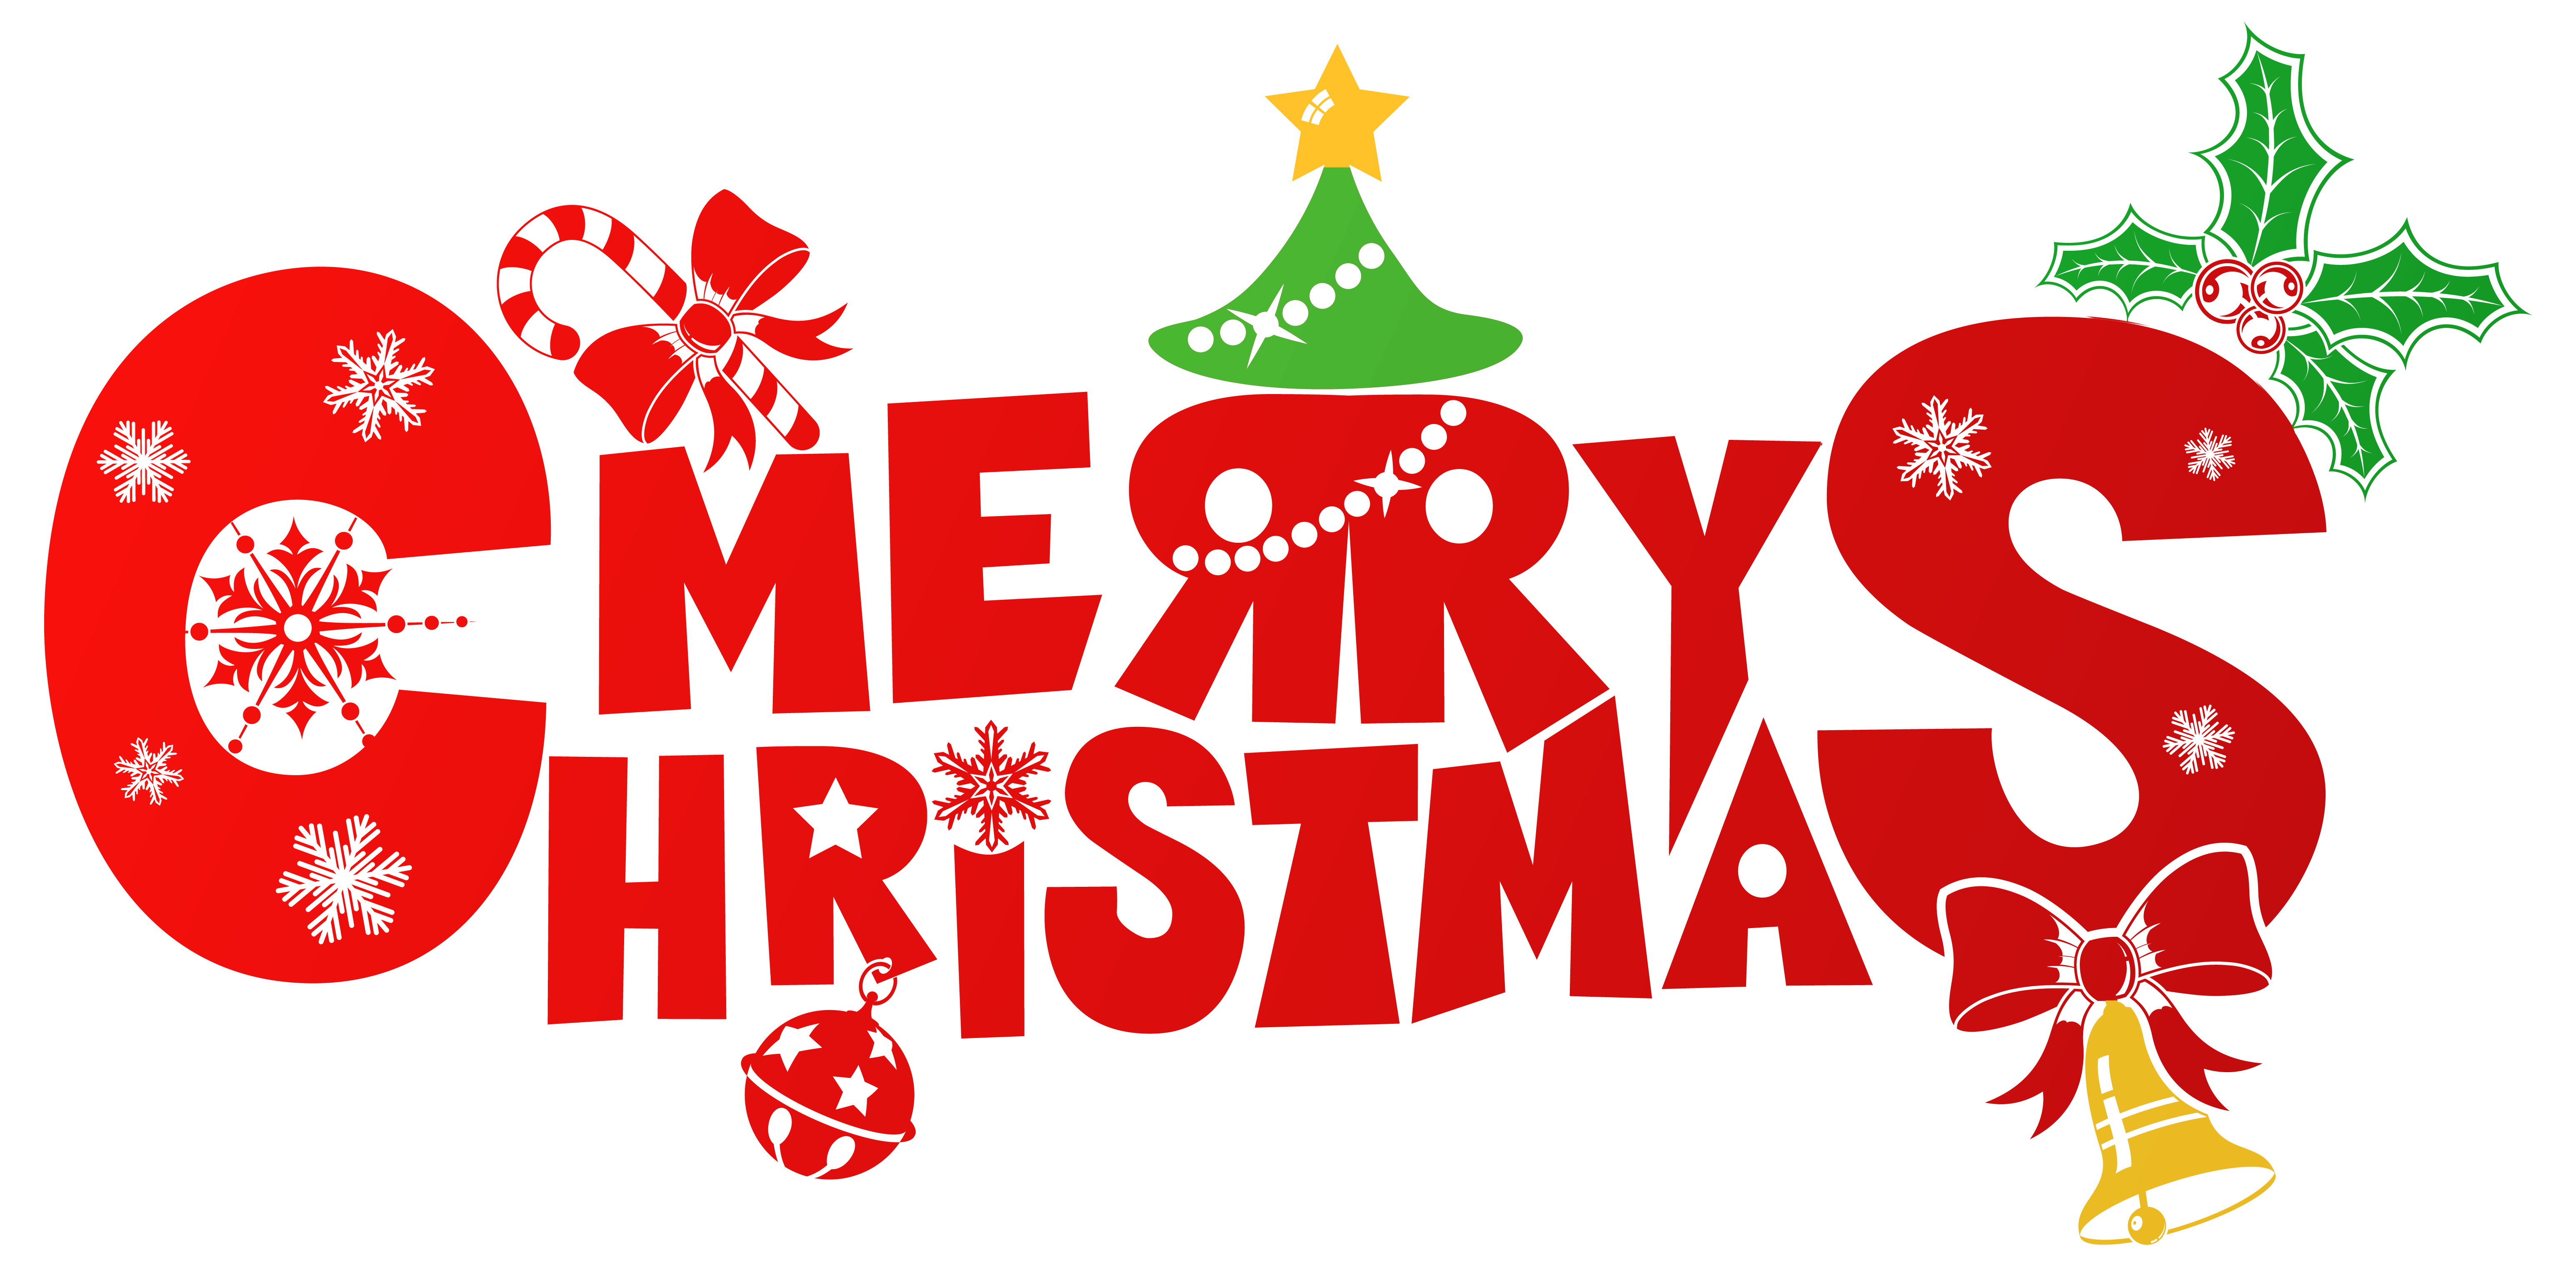 transparent background merry christmas